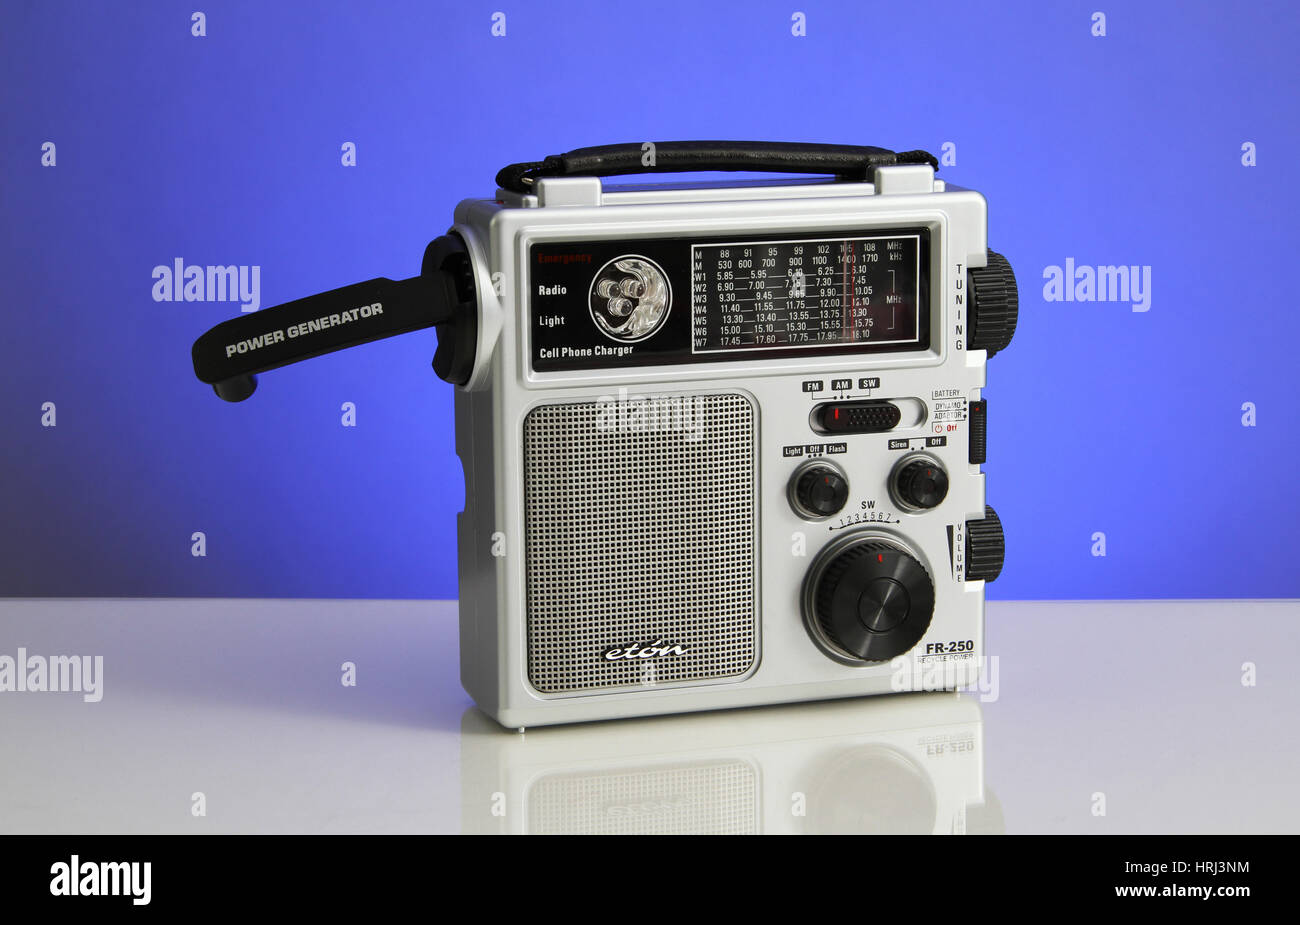 Wind-up Radio - Stock Image